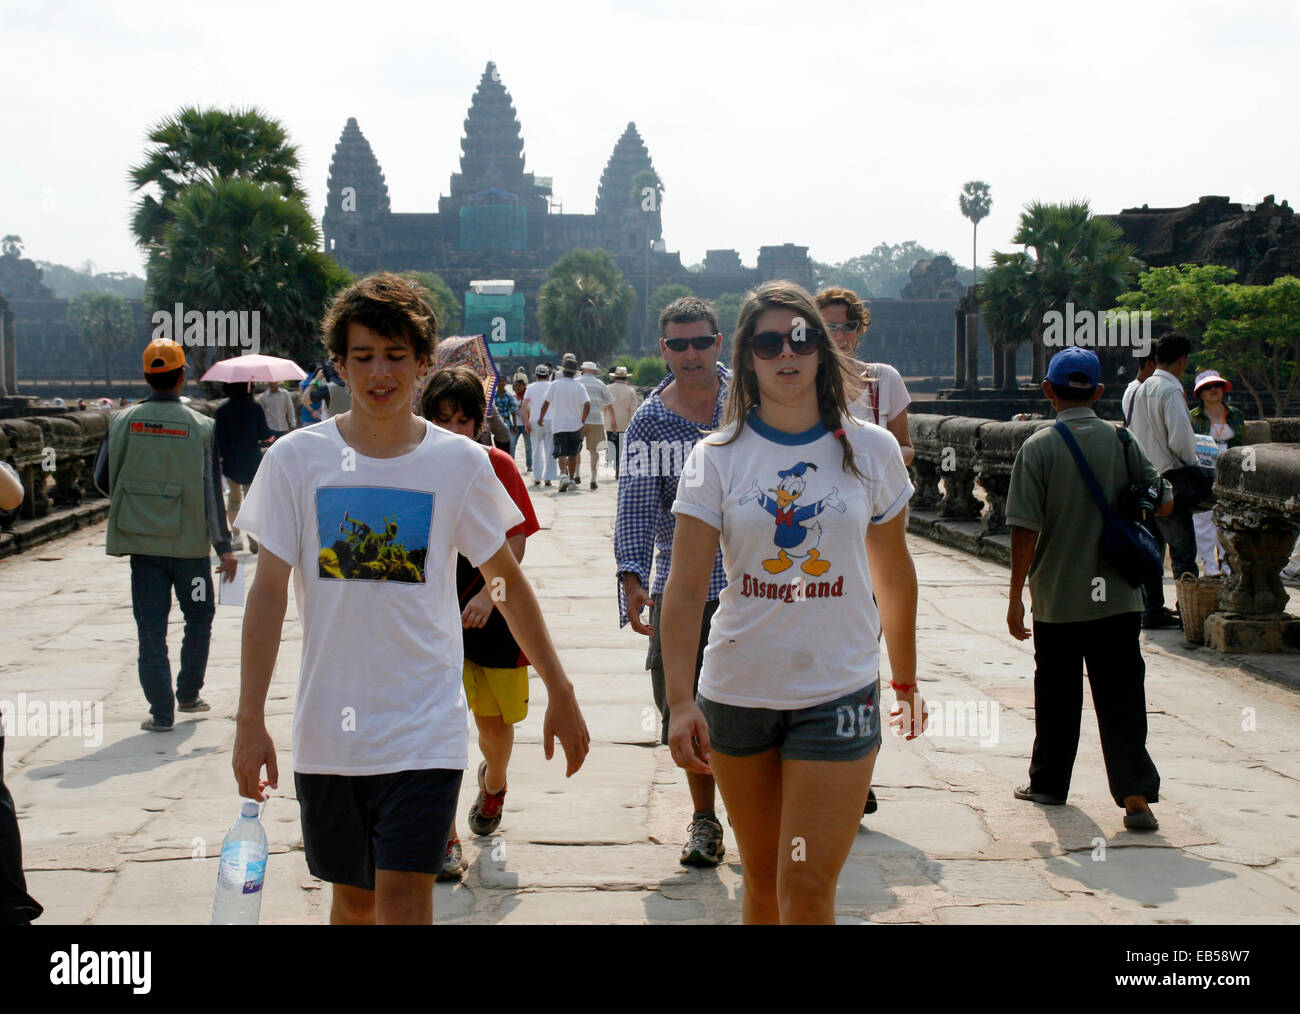 Phnom Penh, Cambodia. 26th Nov, 2014. Tourists walk at Angkor Wat Temple in Siem Reap province, Cambodia, on Nov. - Stock Image